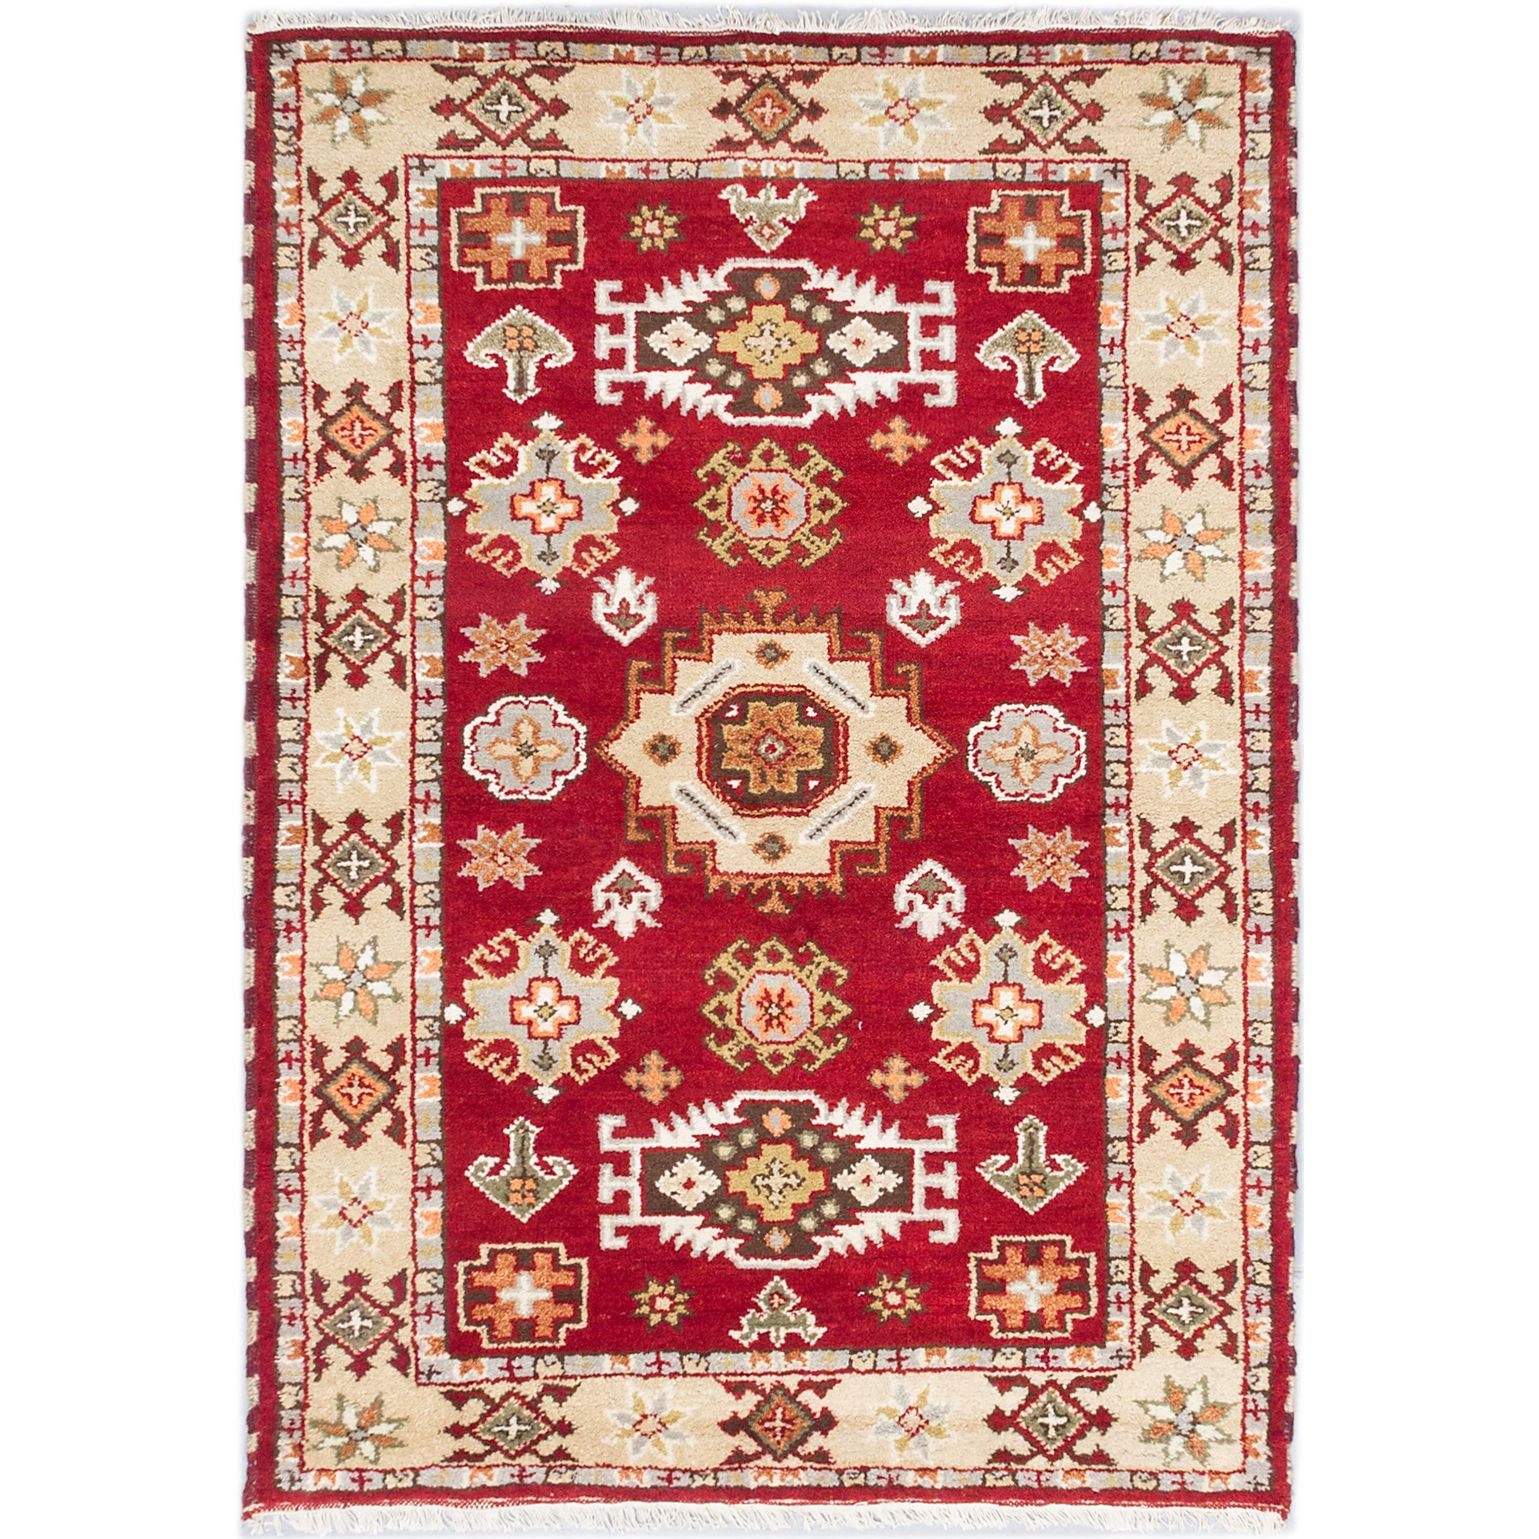 Accent your home with this stylish Indian rug, featuring ...